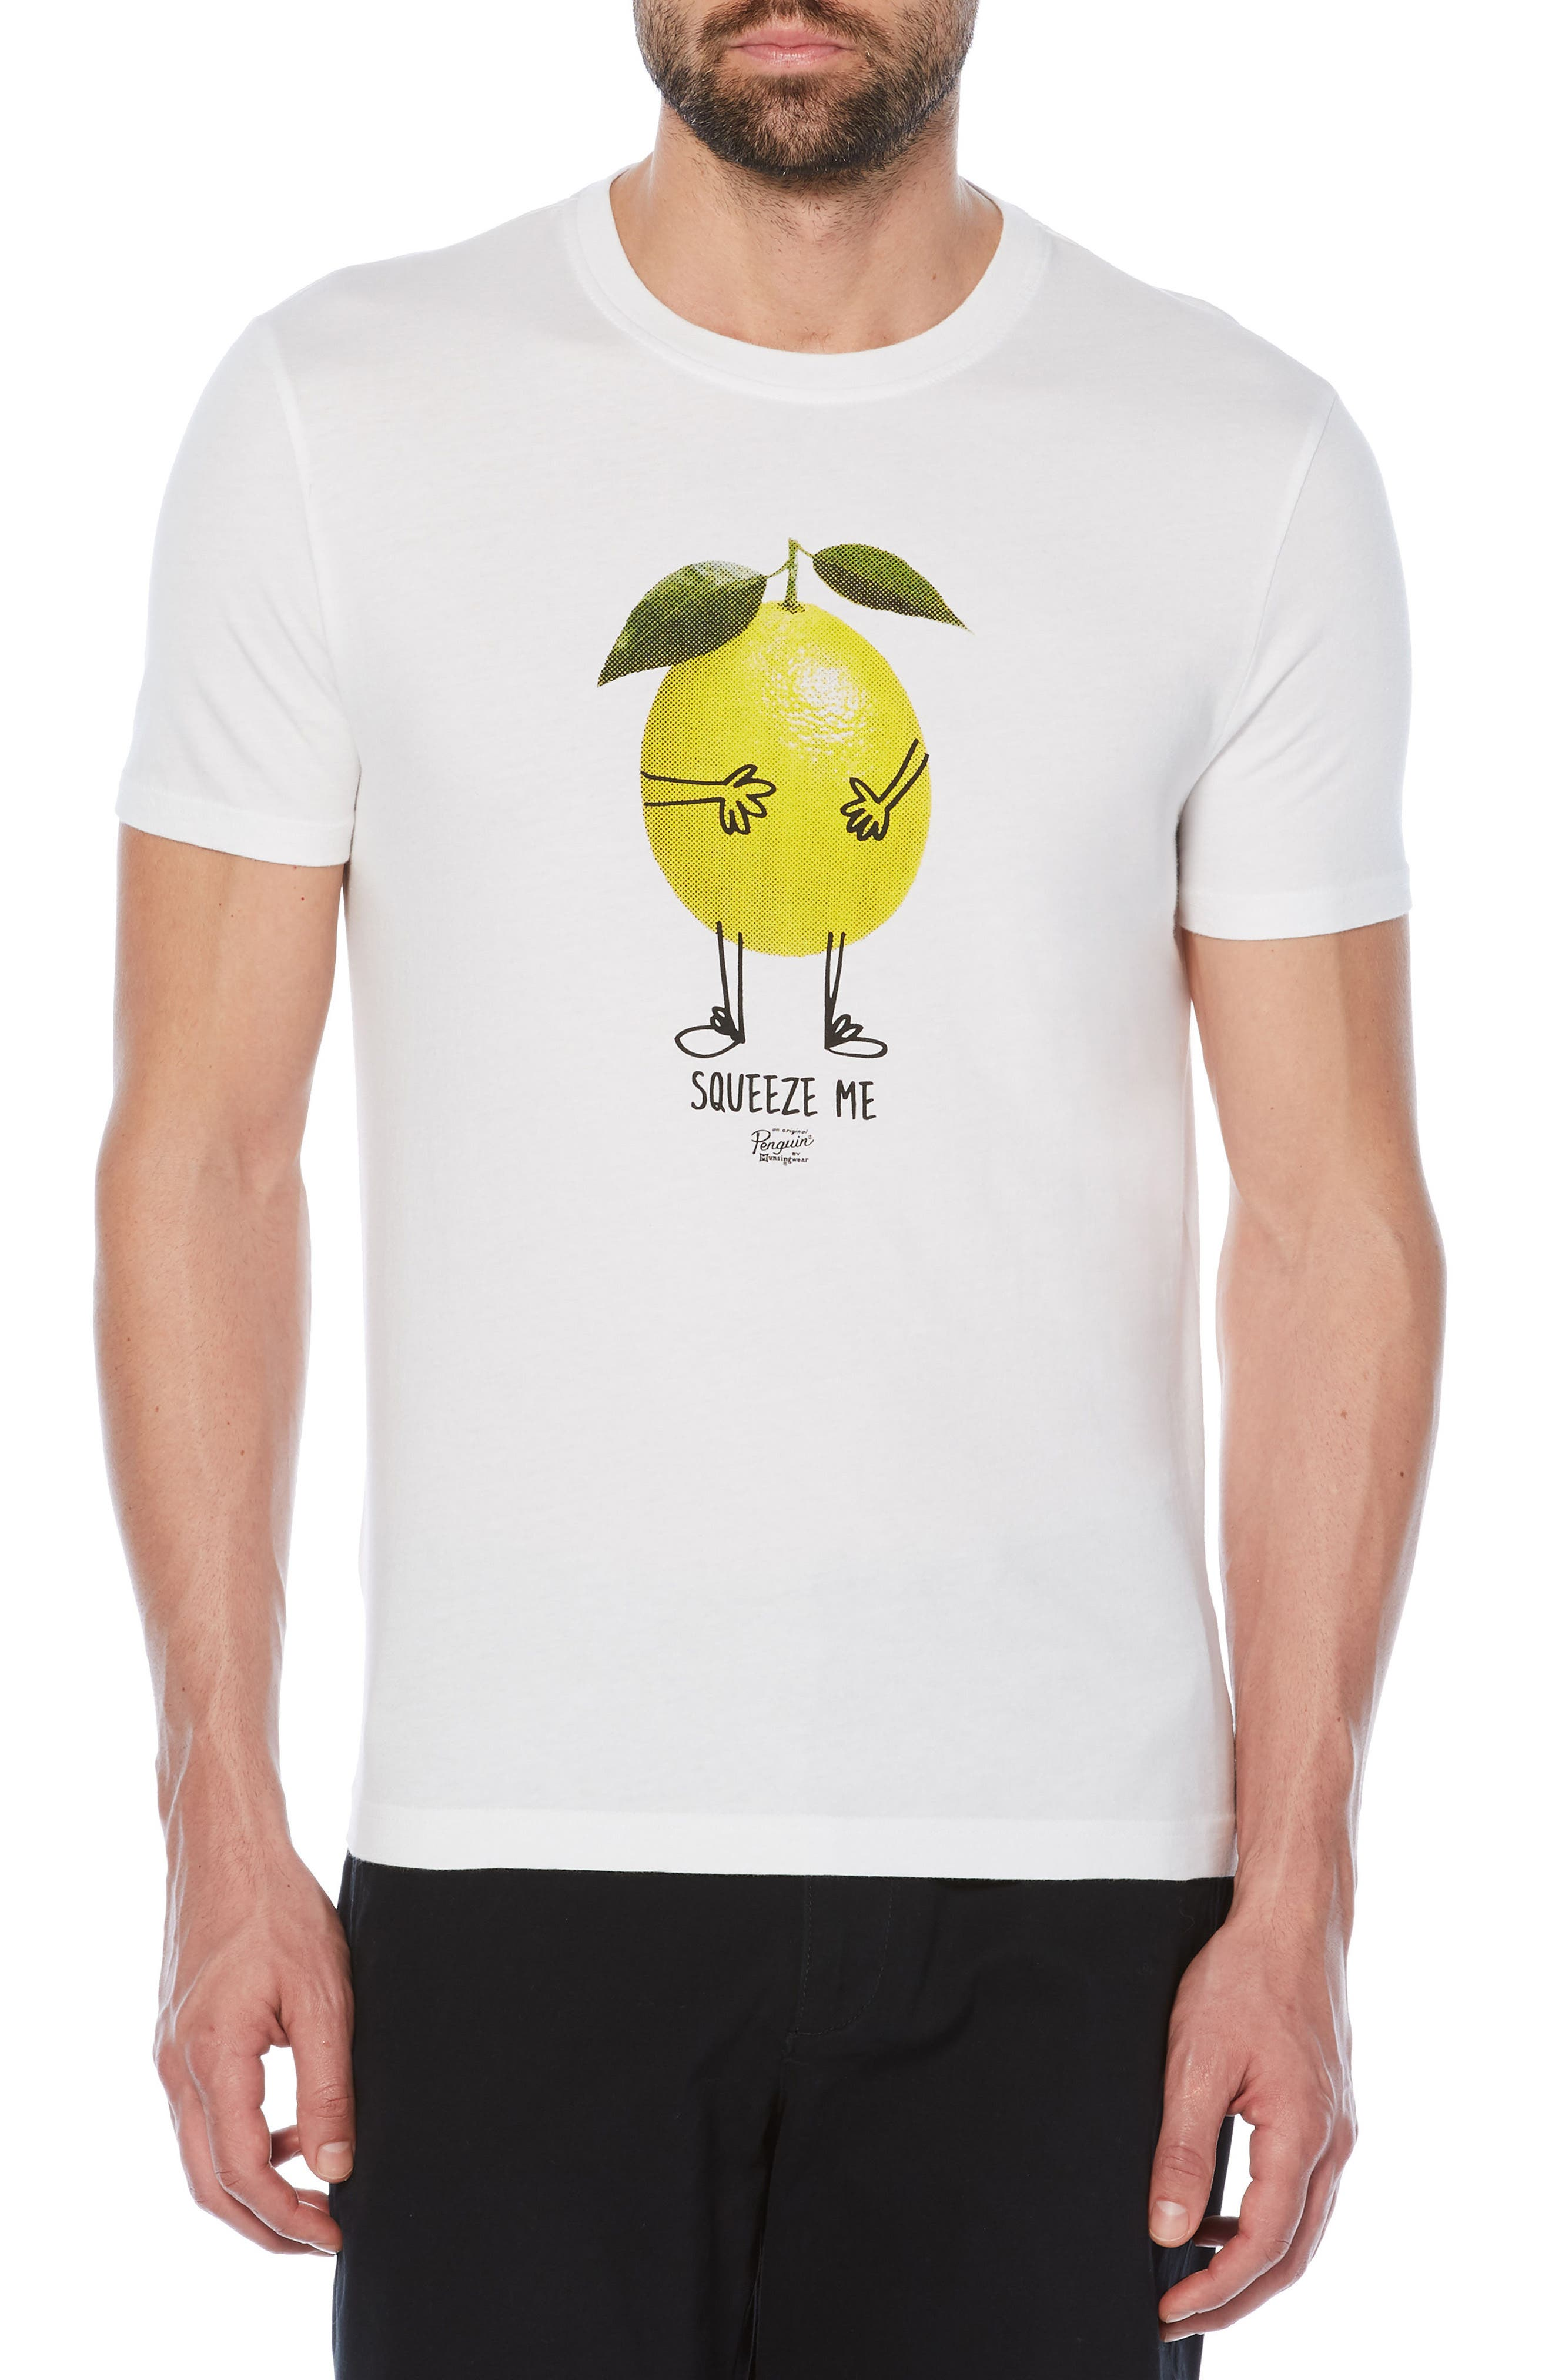 Squeeze Me T-Shirt,                         Main,                         color, Bright White